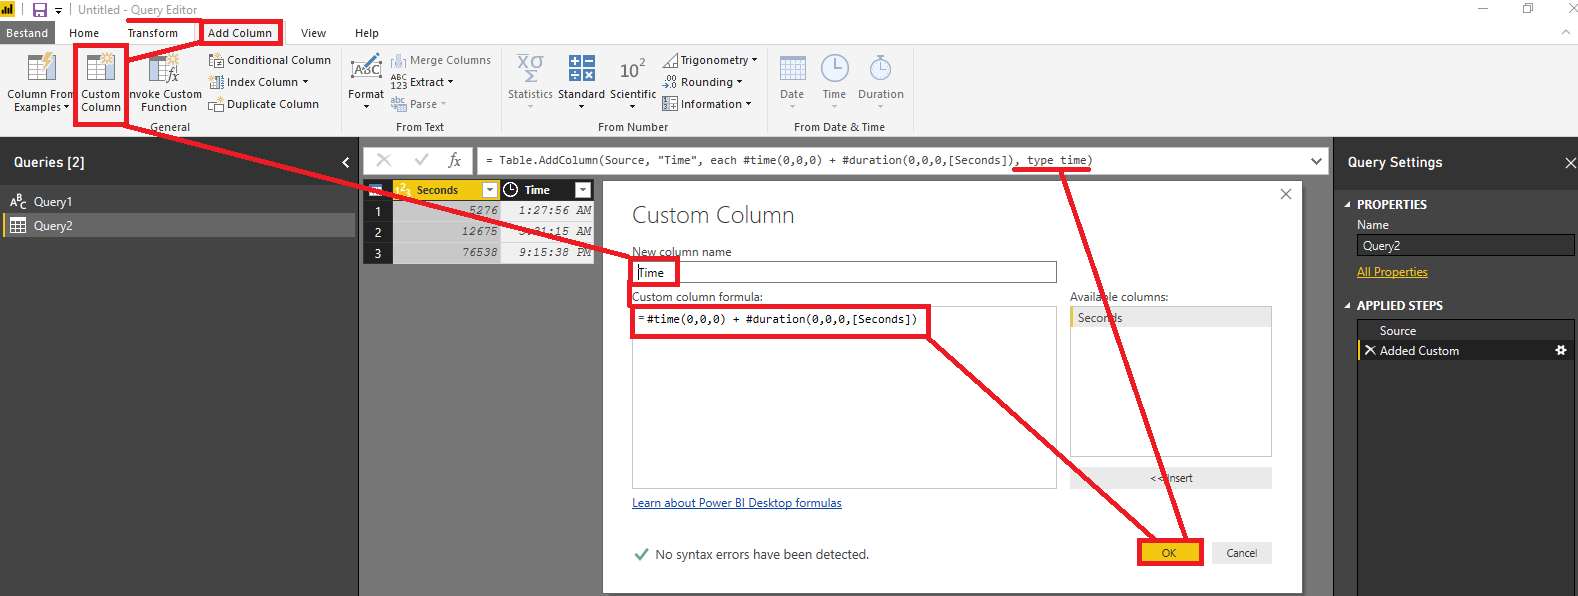 Solved: How to convert seconds to hh:mm:ss - Microsoft Power BI